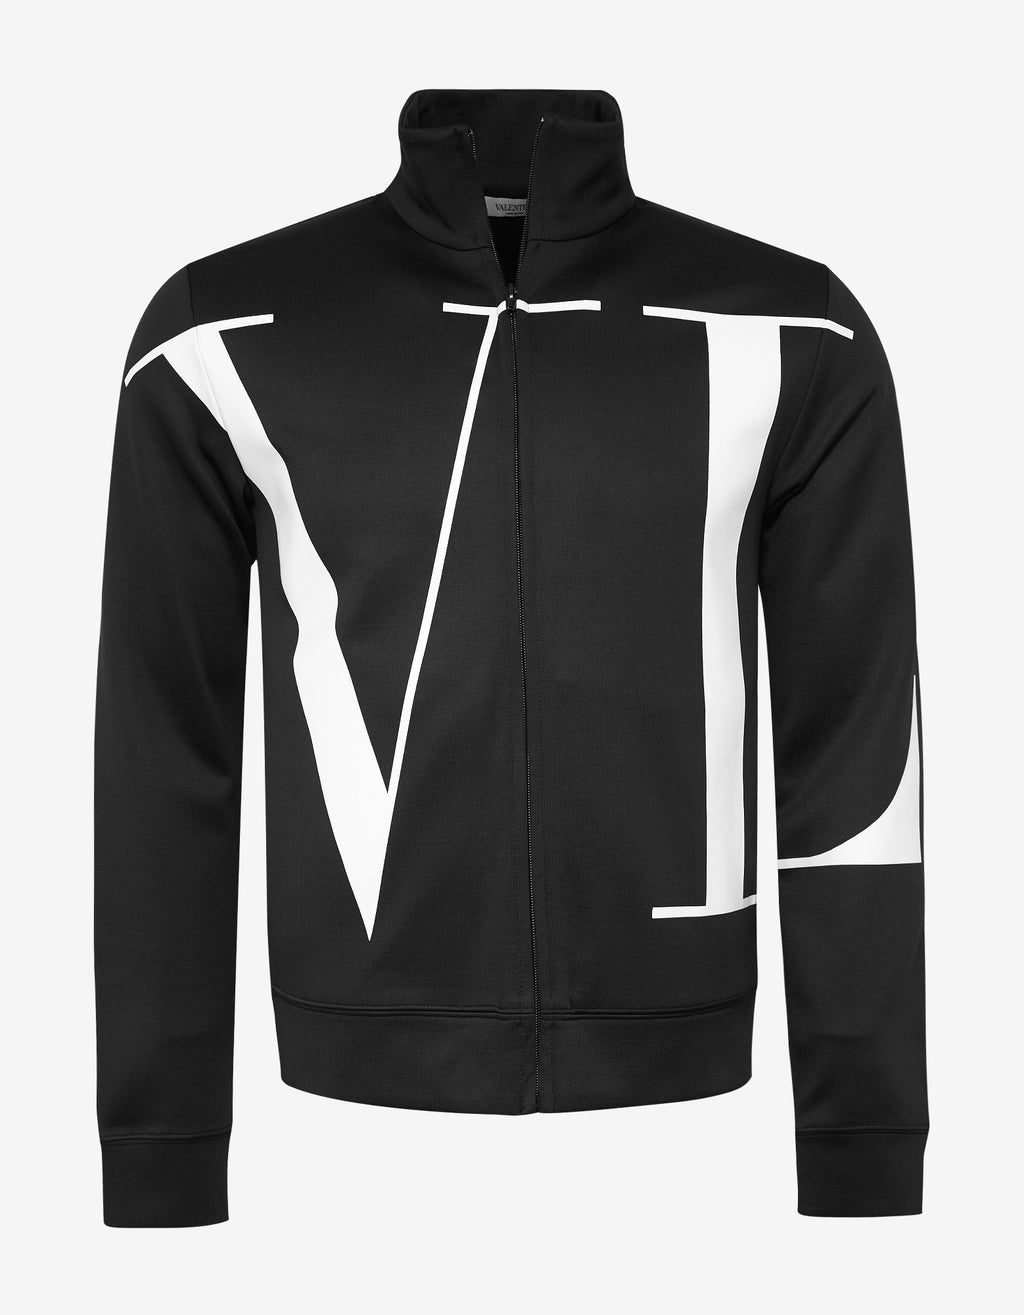 Black VLTN Zip Sweatshirt